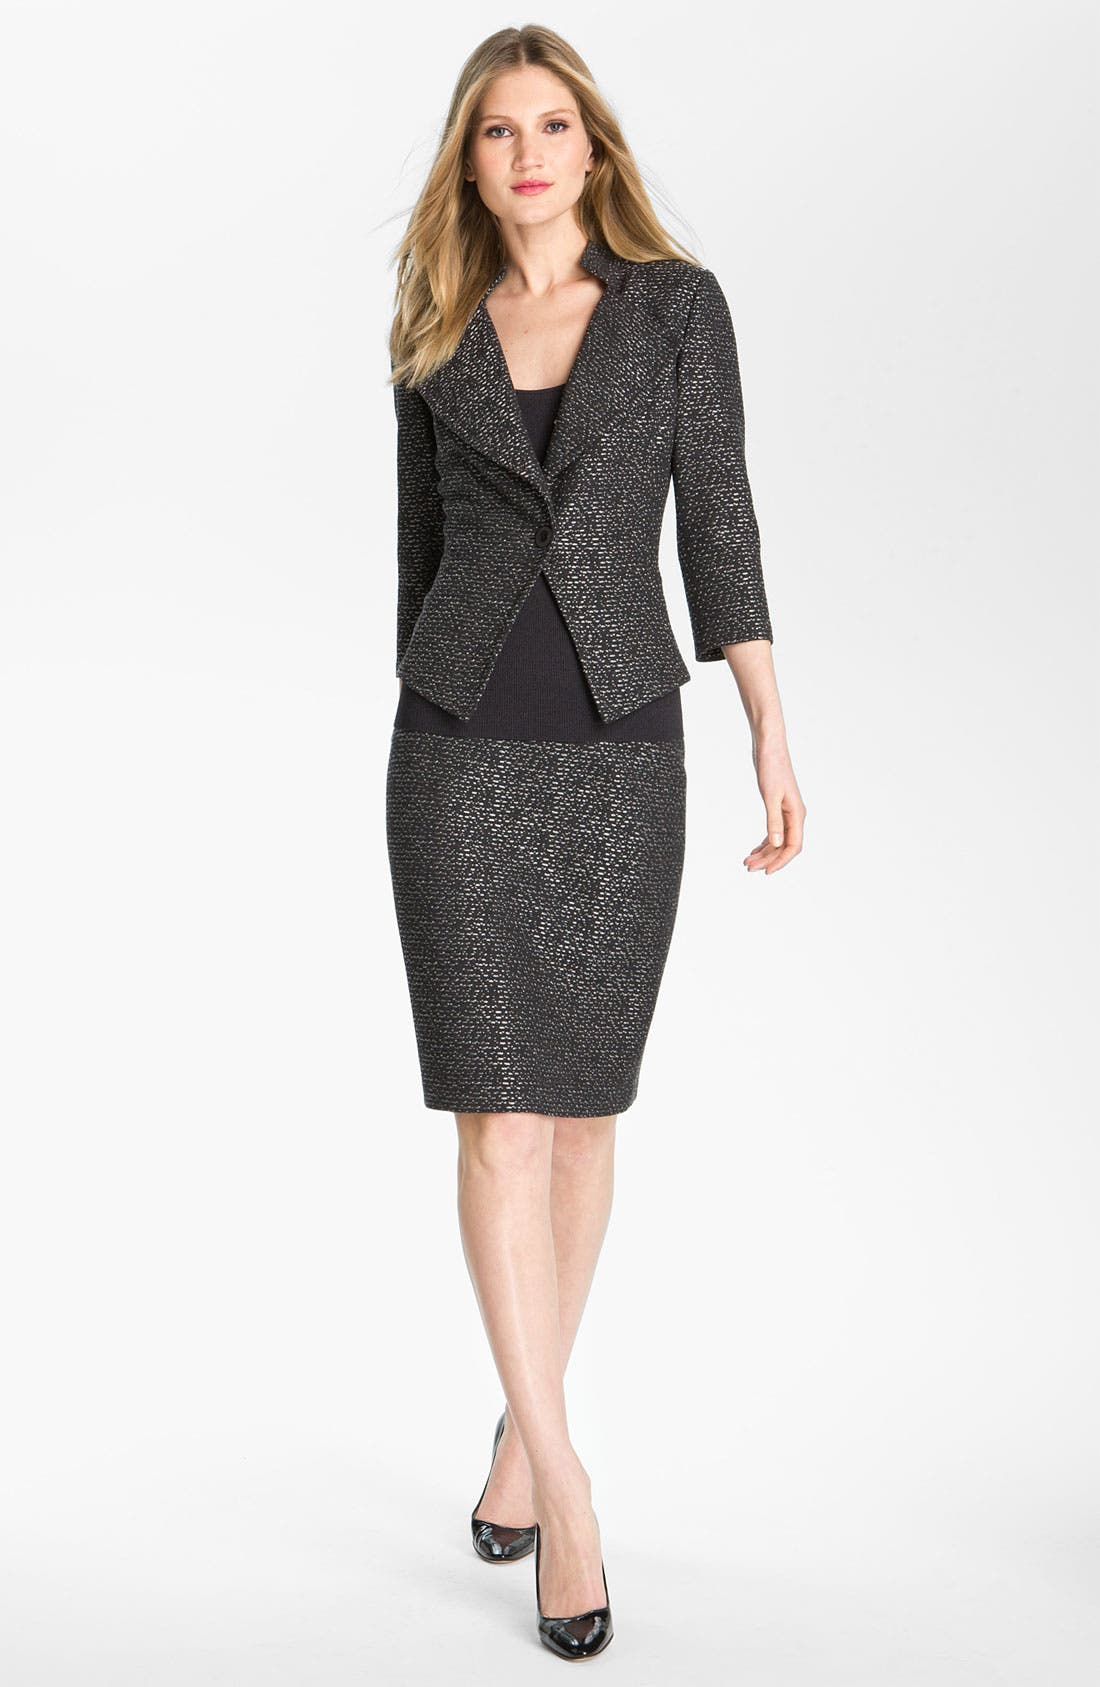 Alternate Image 1 Selected - St. John Collection Pebble Dash Tweed Knit Skirt